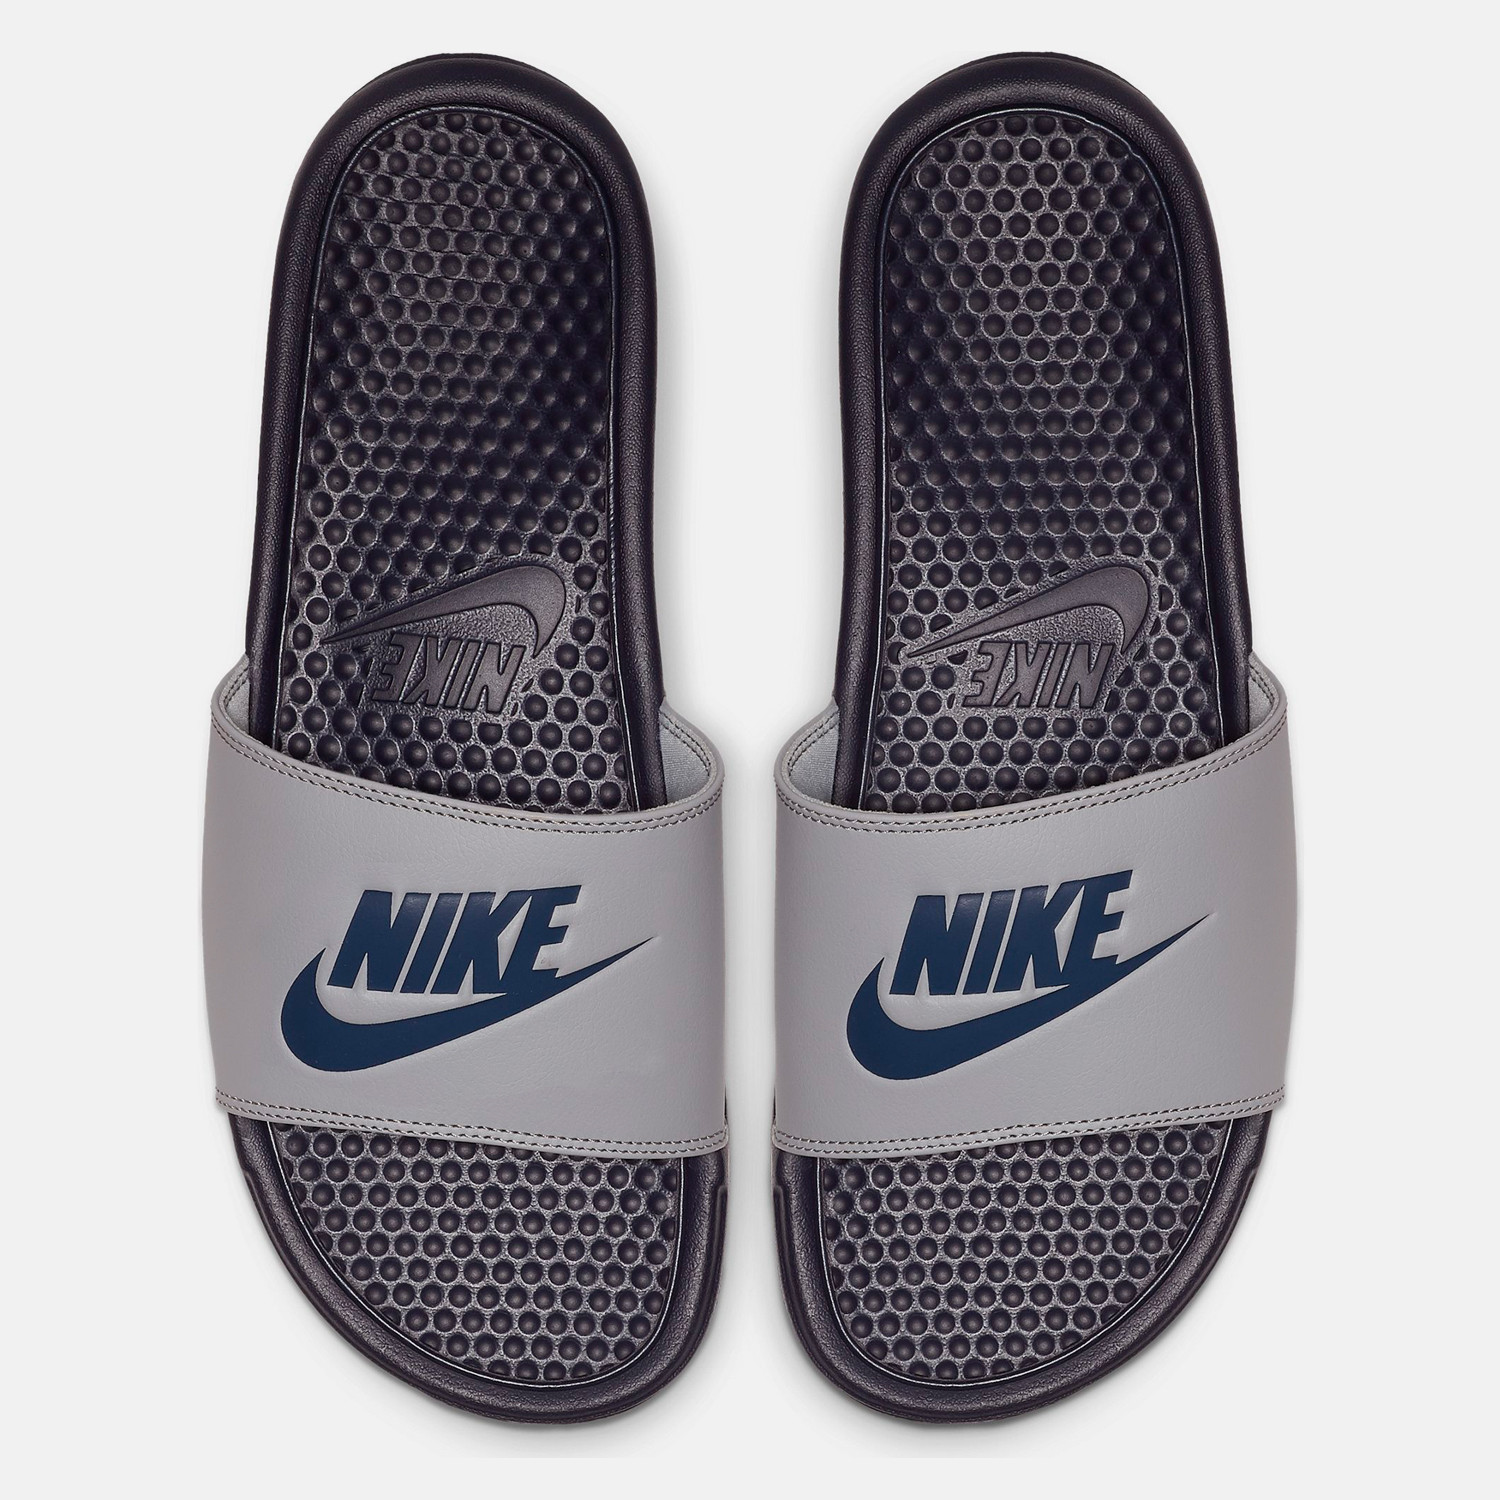 Nike Benassi Jdi Men's Slides (9000053178_45692)